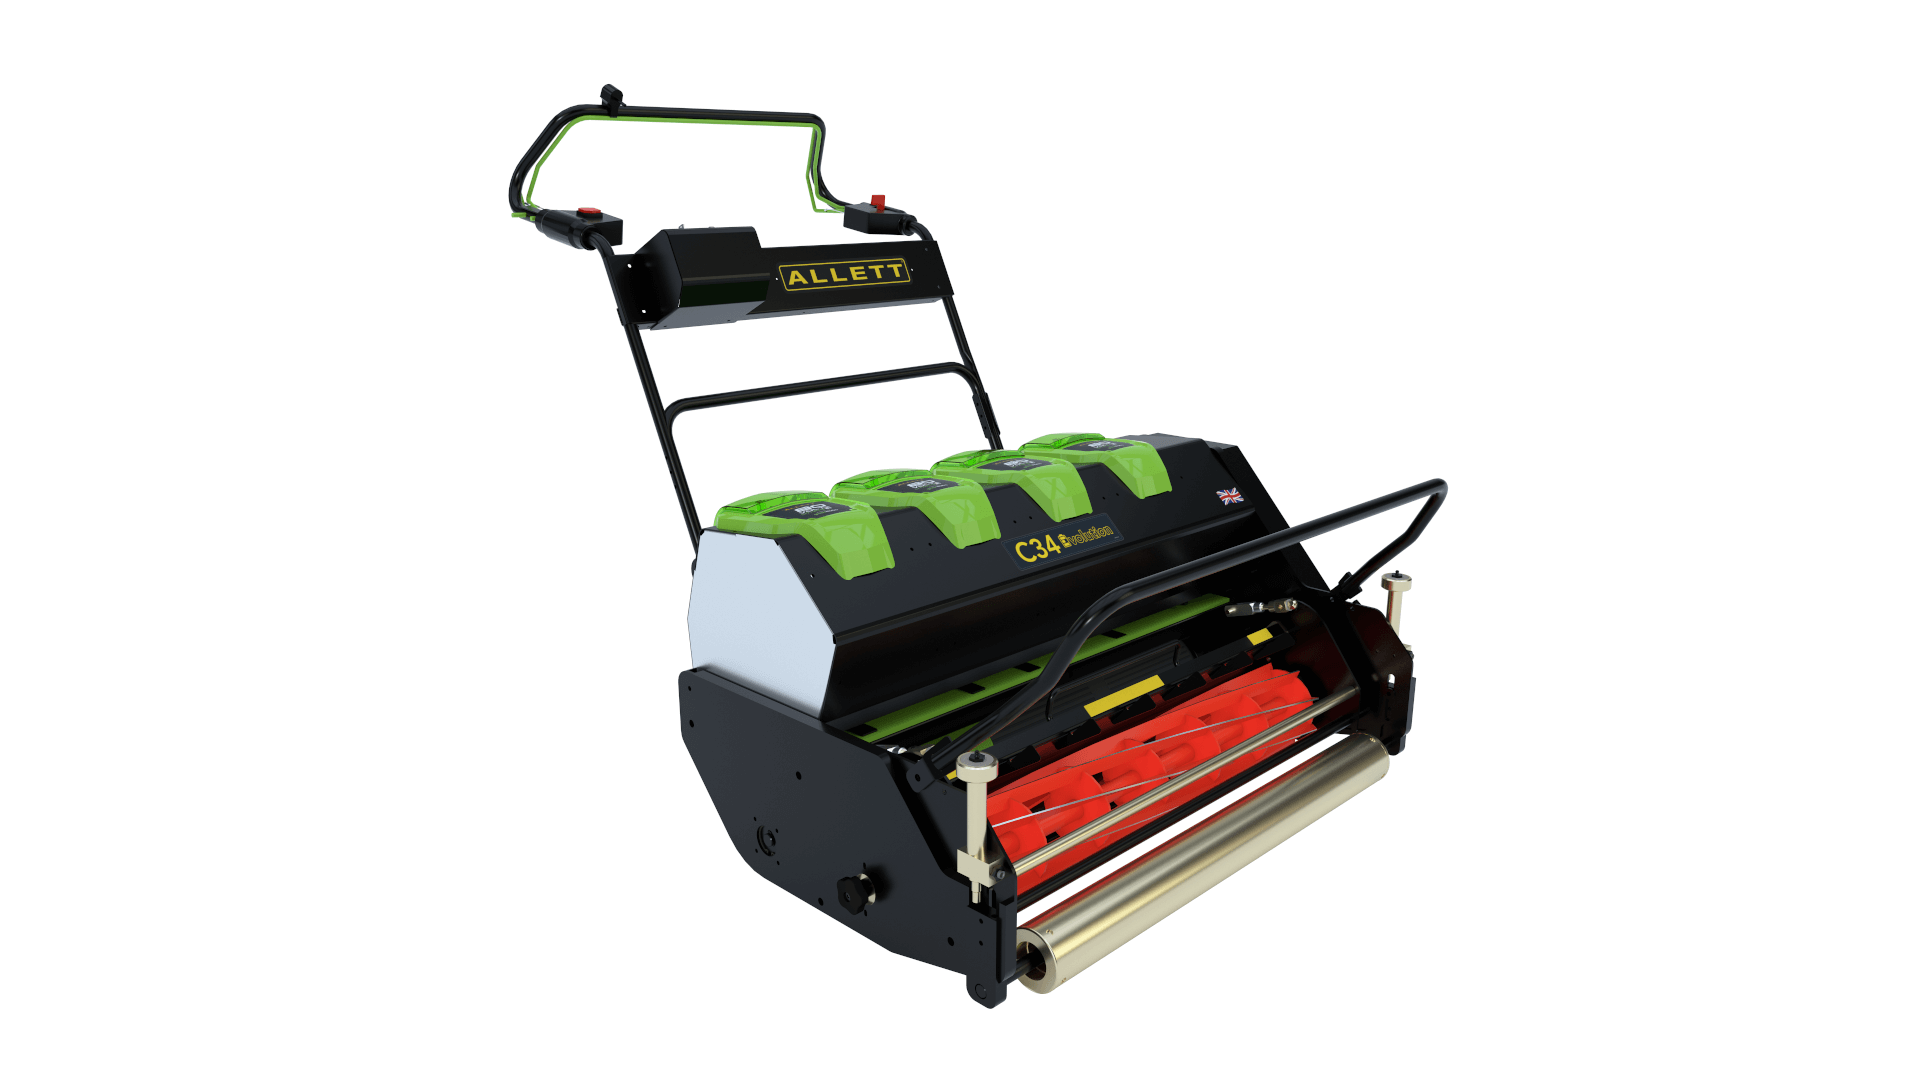 ALLETT C34 Evolution Cylinder Mower (Power-unit with Grassbox)